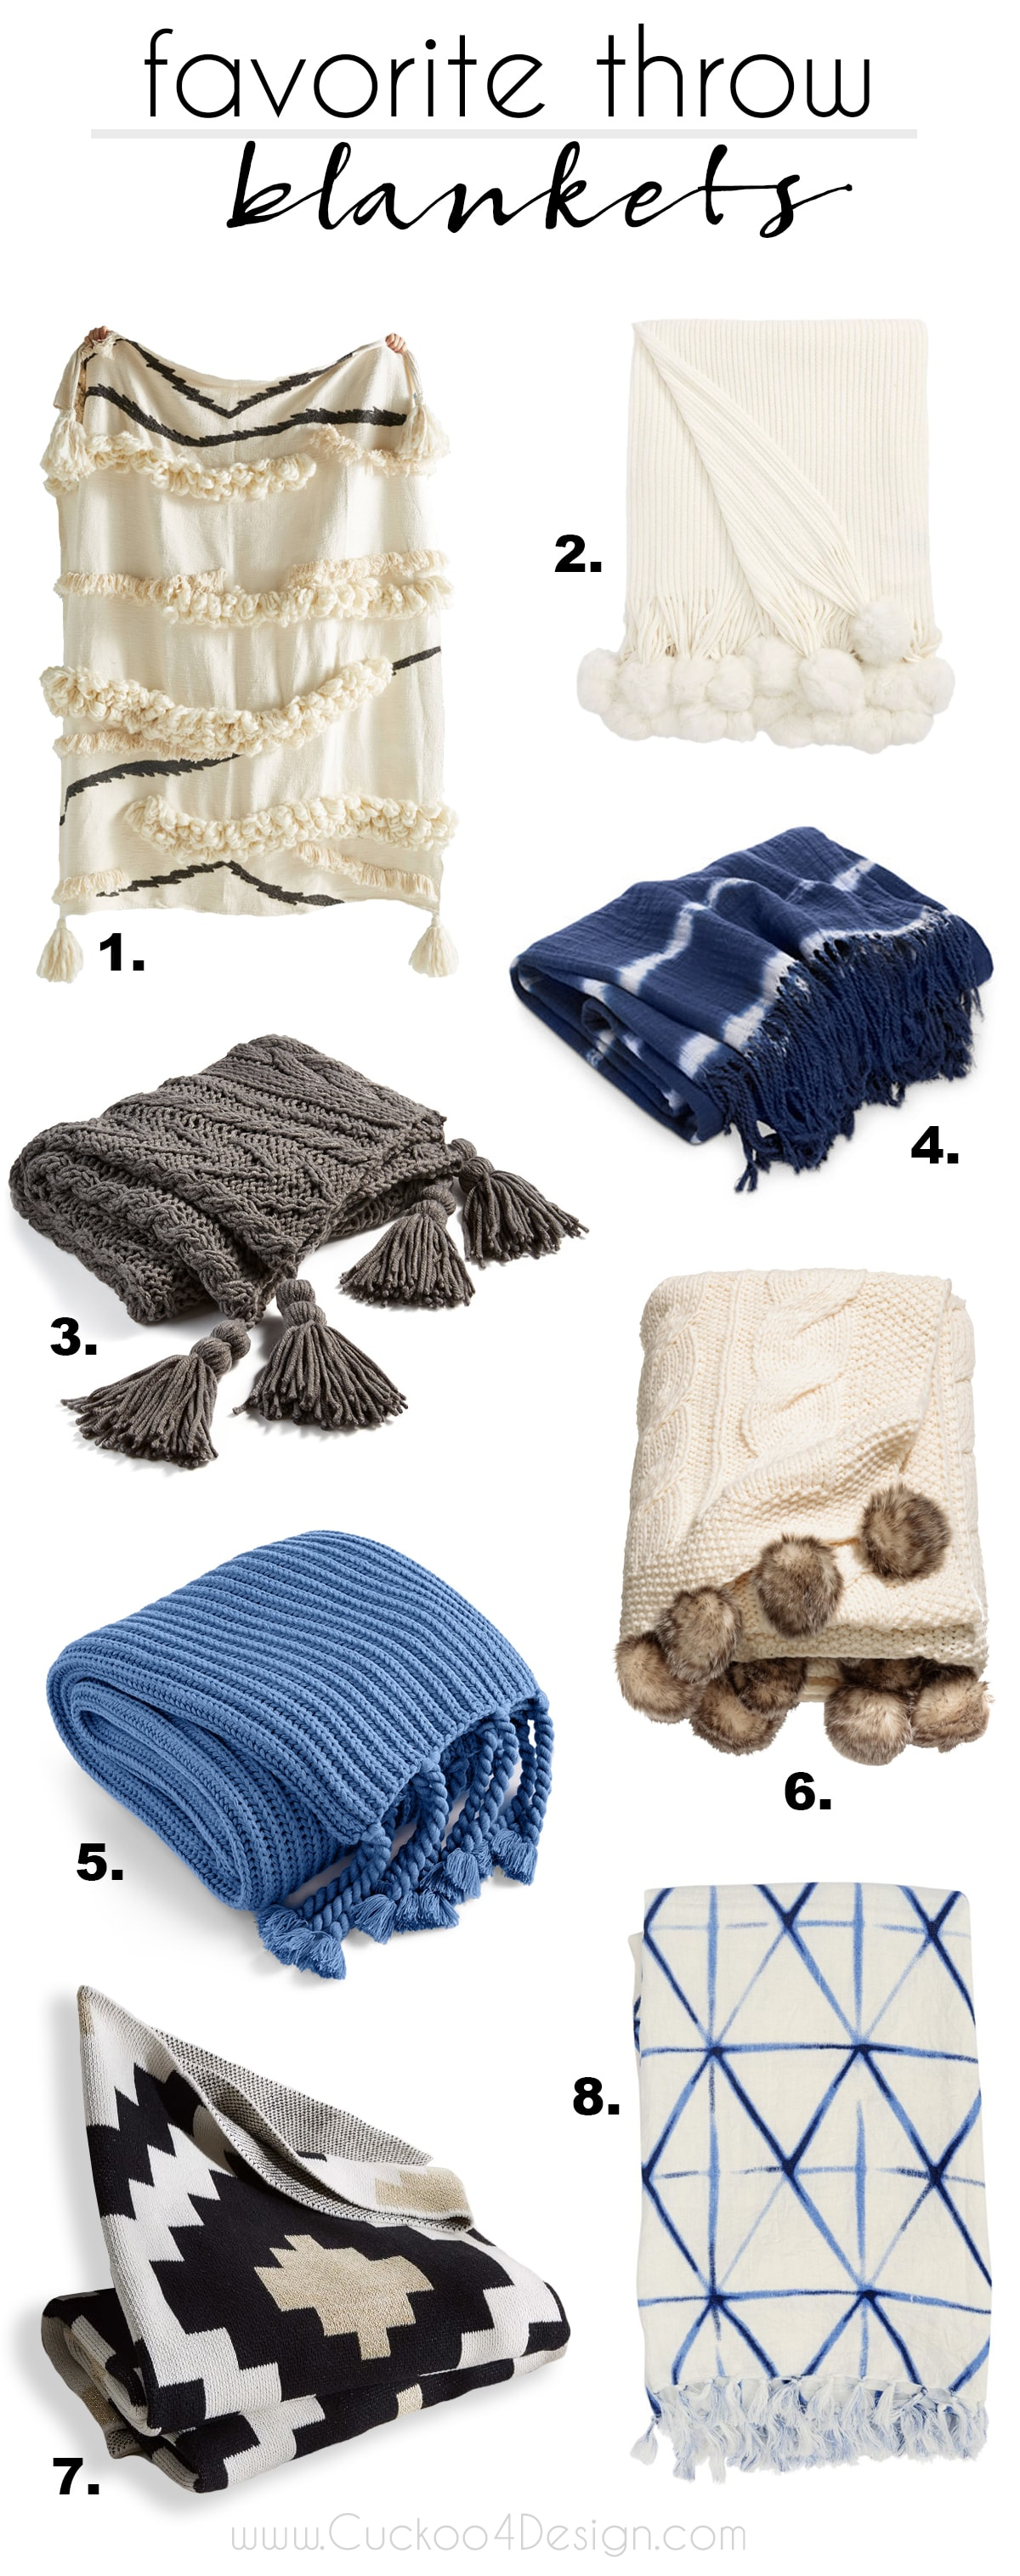 Gift Guide: Favorite Cozy Throw Blankets | every house needs a pretty and cozy throw